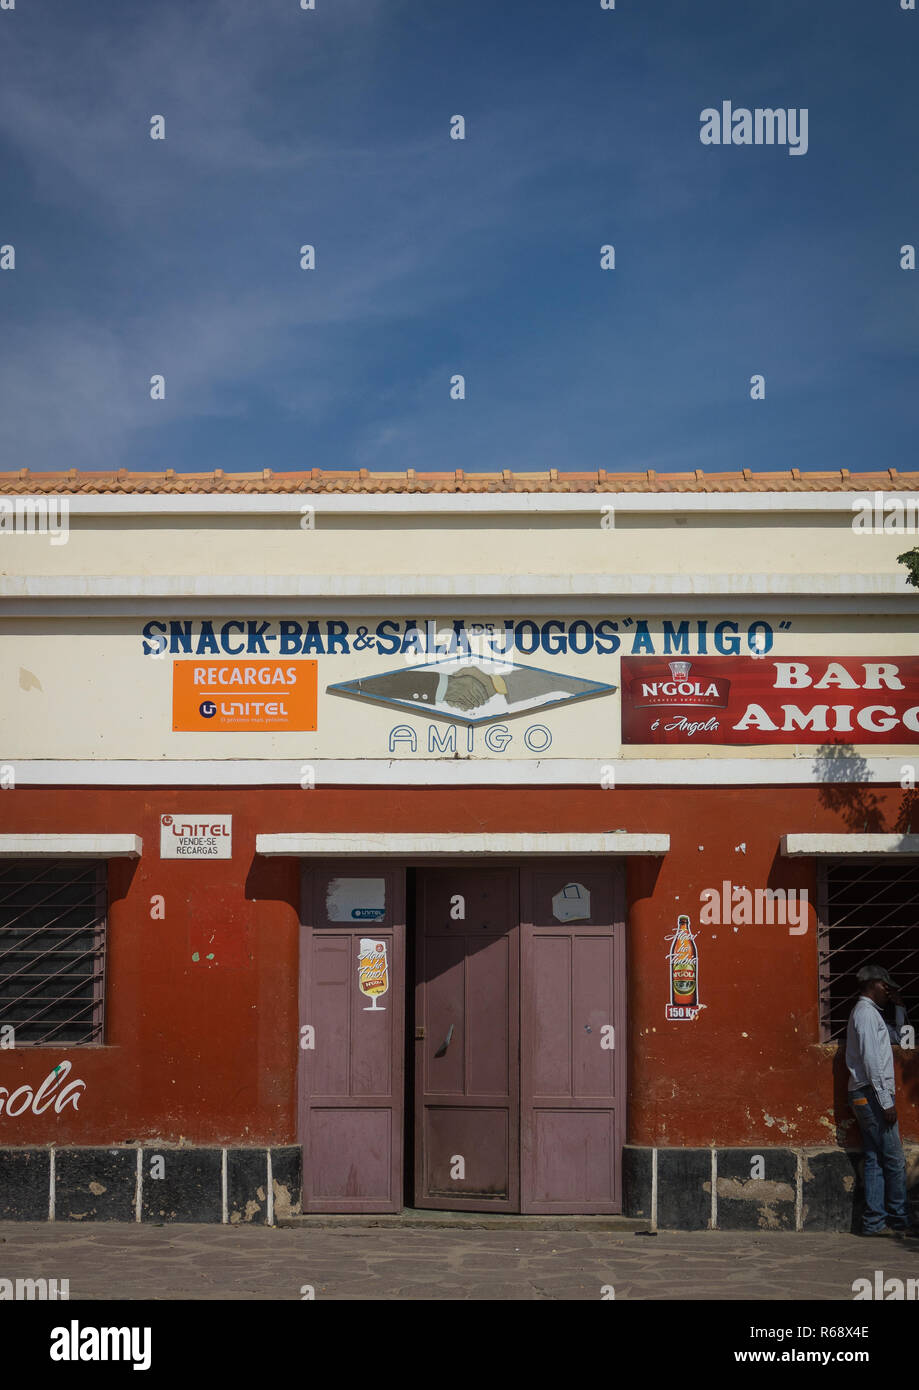 Snack bar in an old portuguese colonial building, Namibe Province, Namibe, Angola Stock Photo